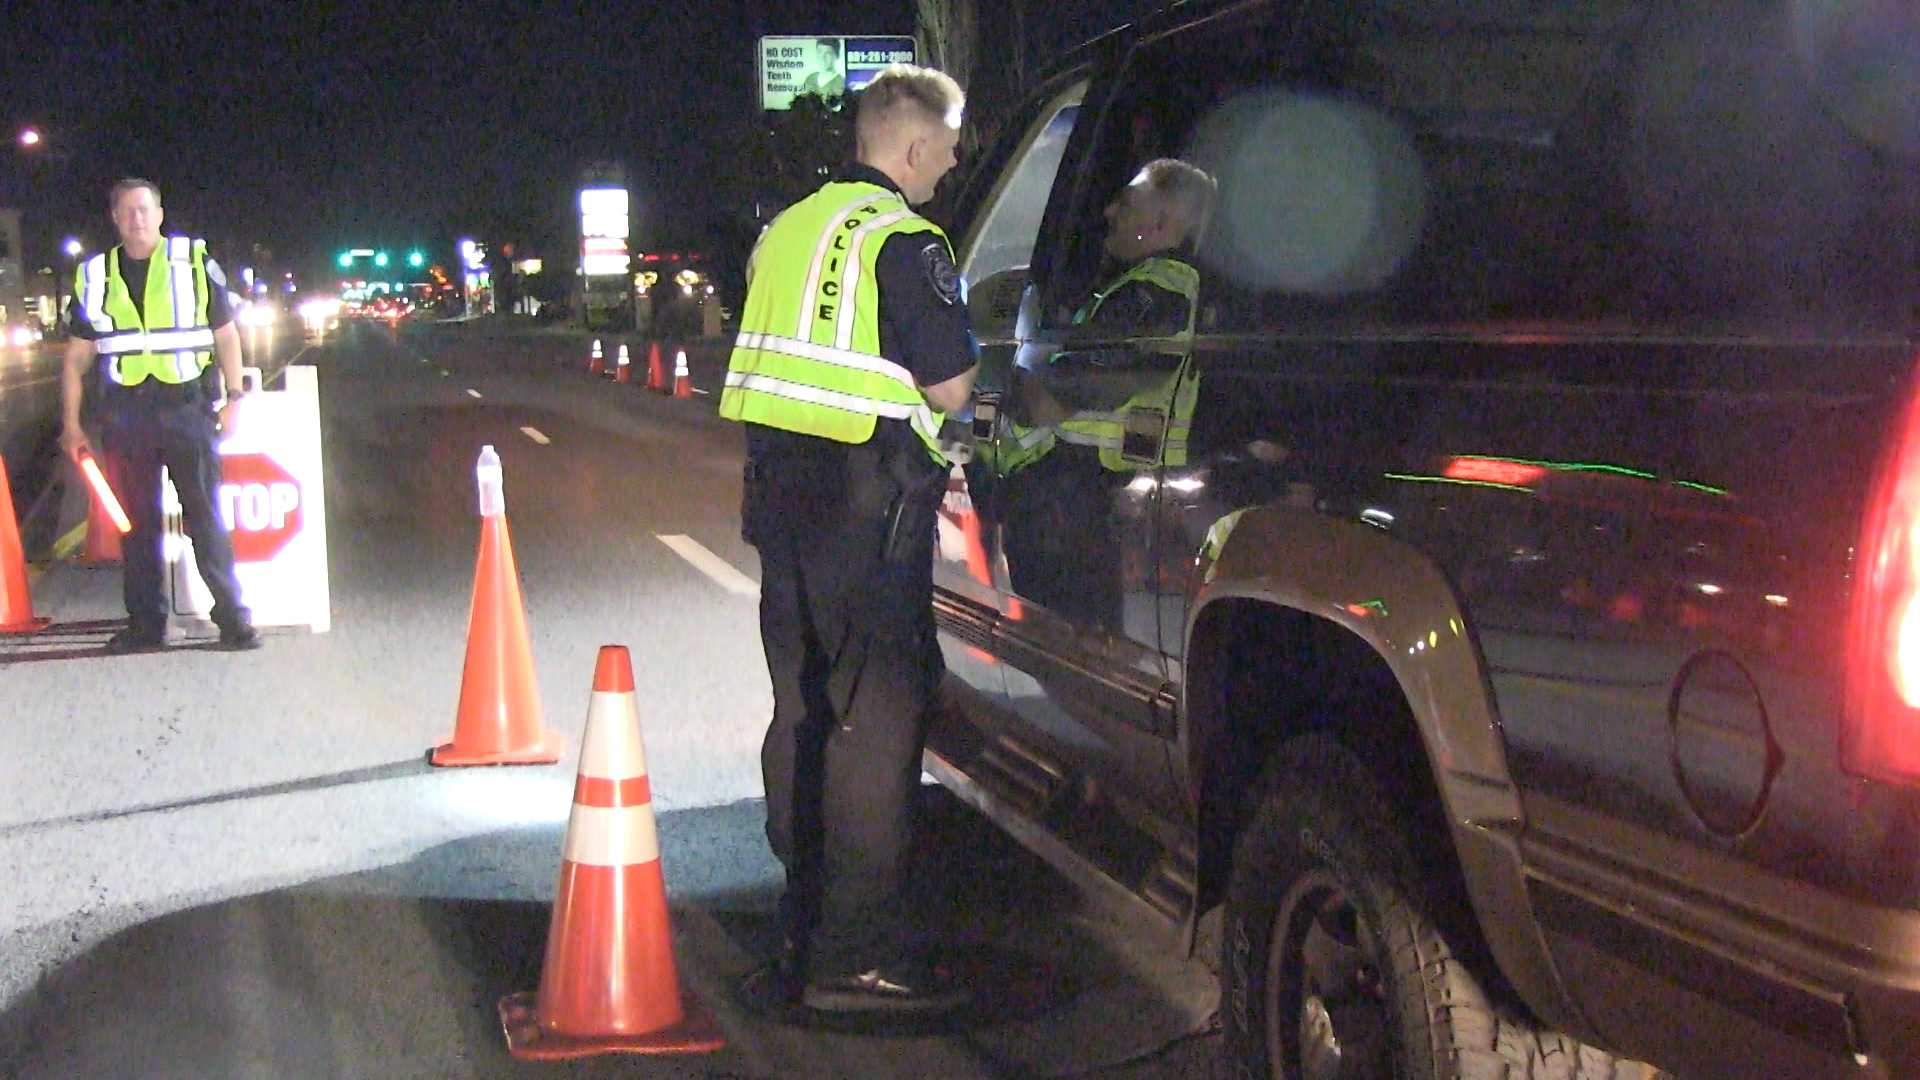 Officer talking to driver during a DUI checkpoint